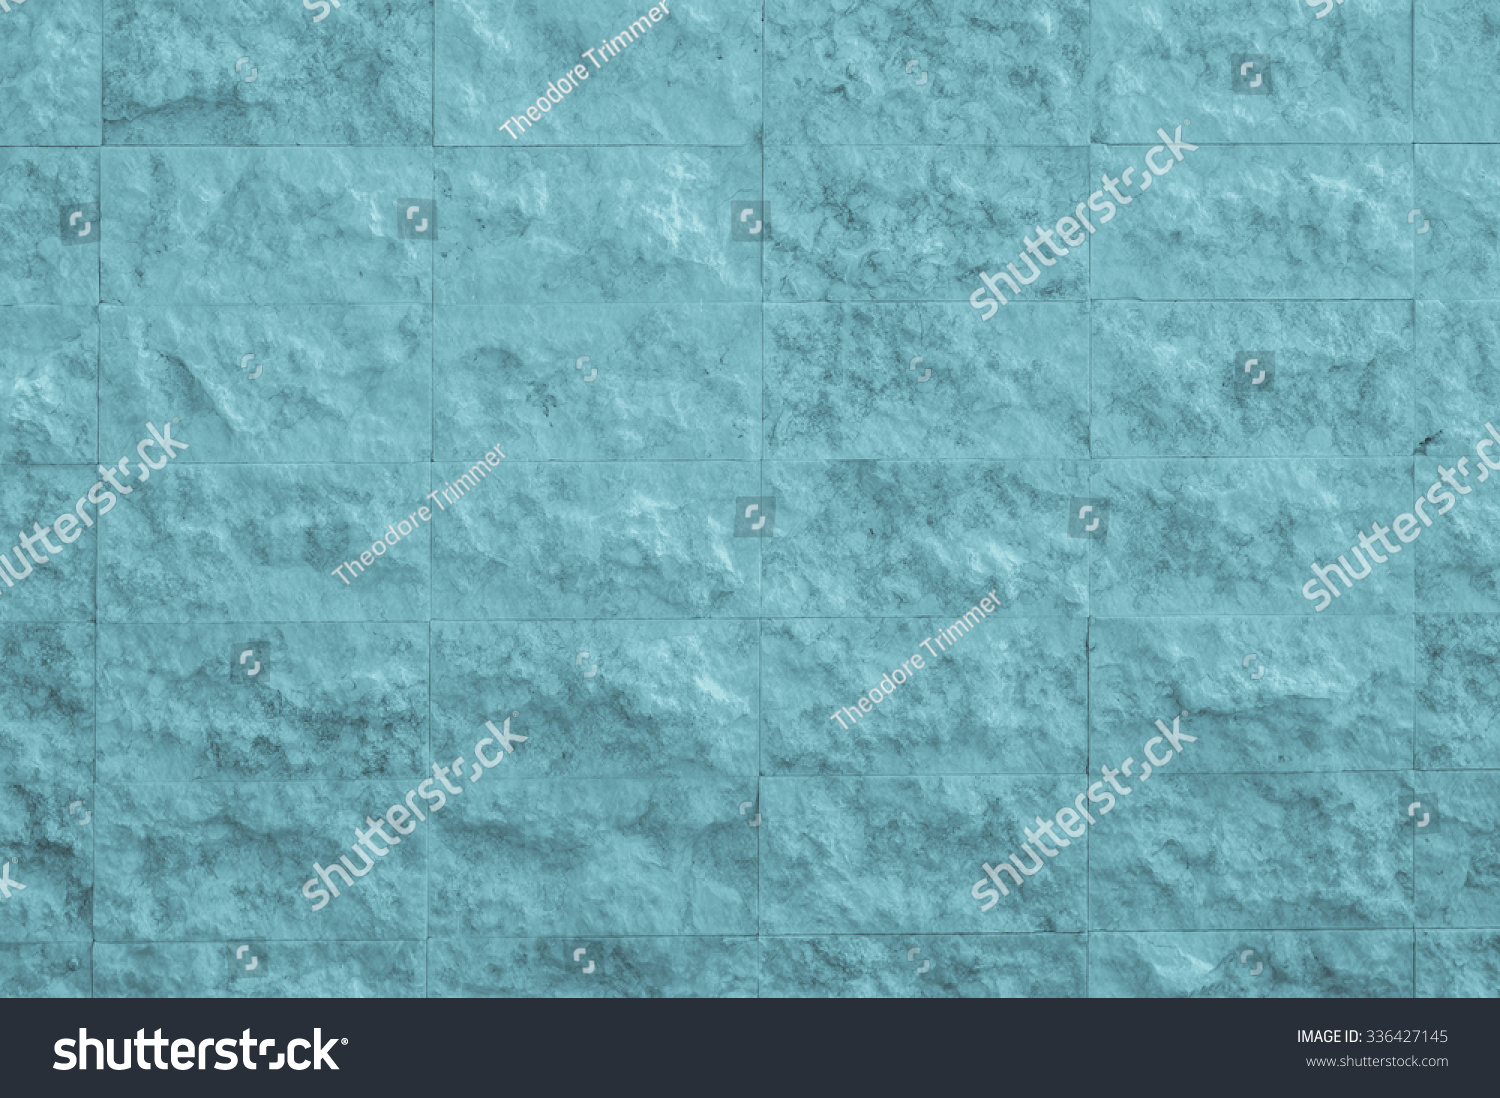 Light Blue Stone Wall. Pale Blue Stone Wall With Tones Of Turquoise, White,